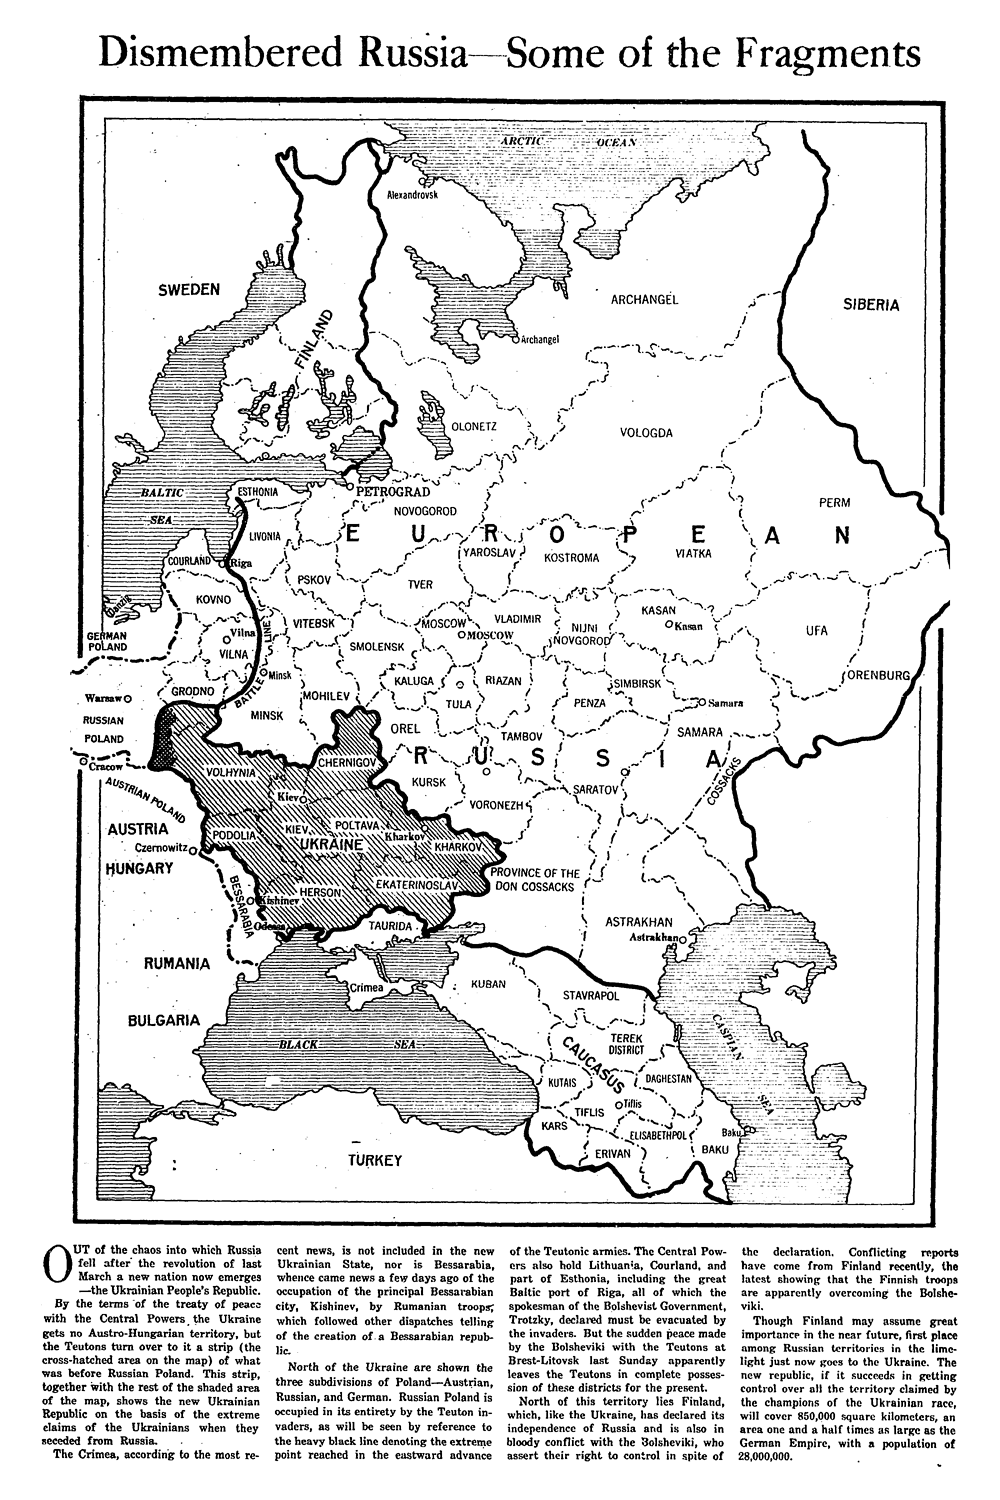 https://upload.wikimedia.org/wikipedia/commons/f/fd/Dismembered_Russia_%E2%80%94_Some_Fragments_%28NYT_article%2C_Feb._17%2C_1918%29.png